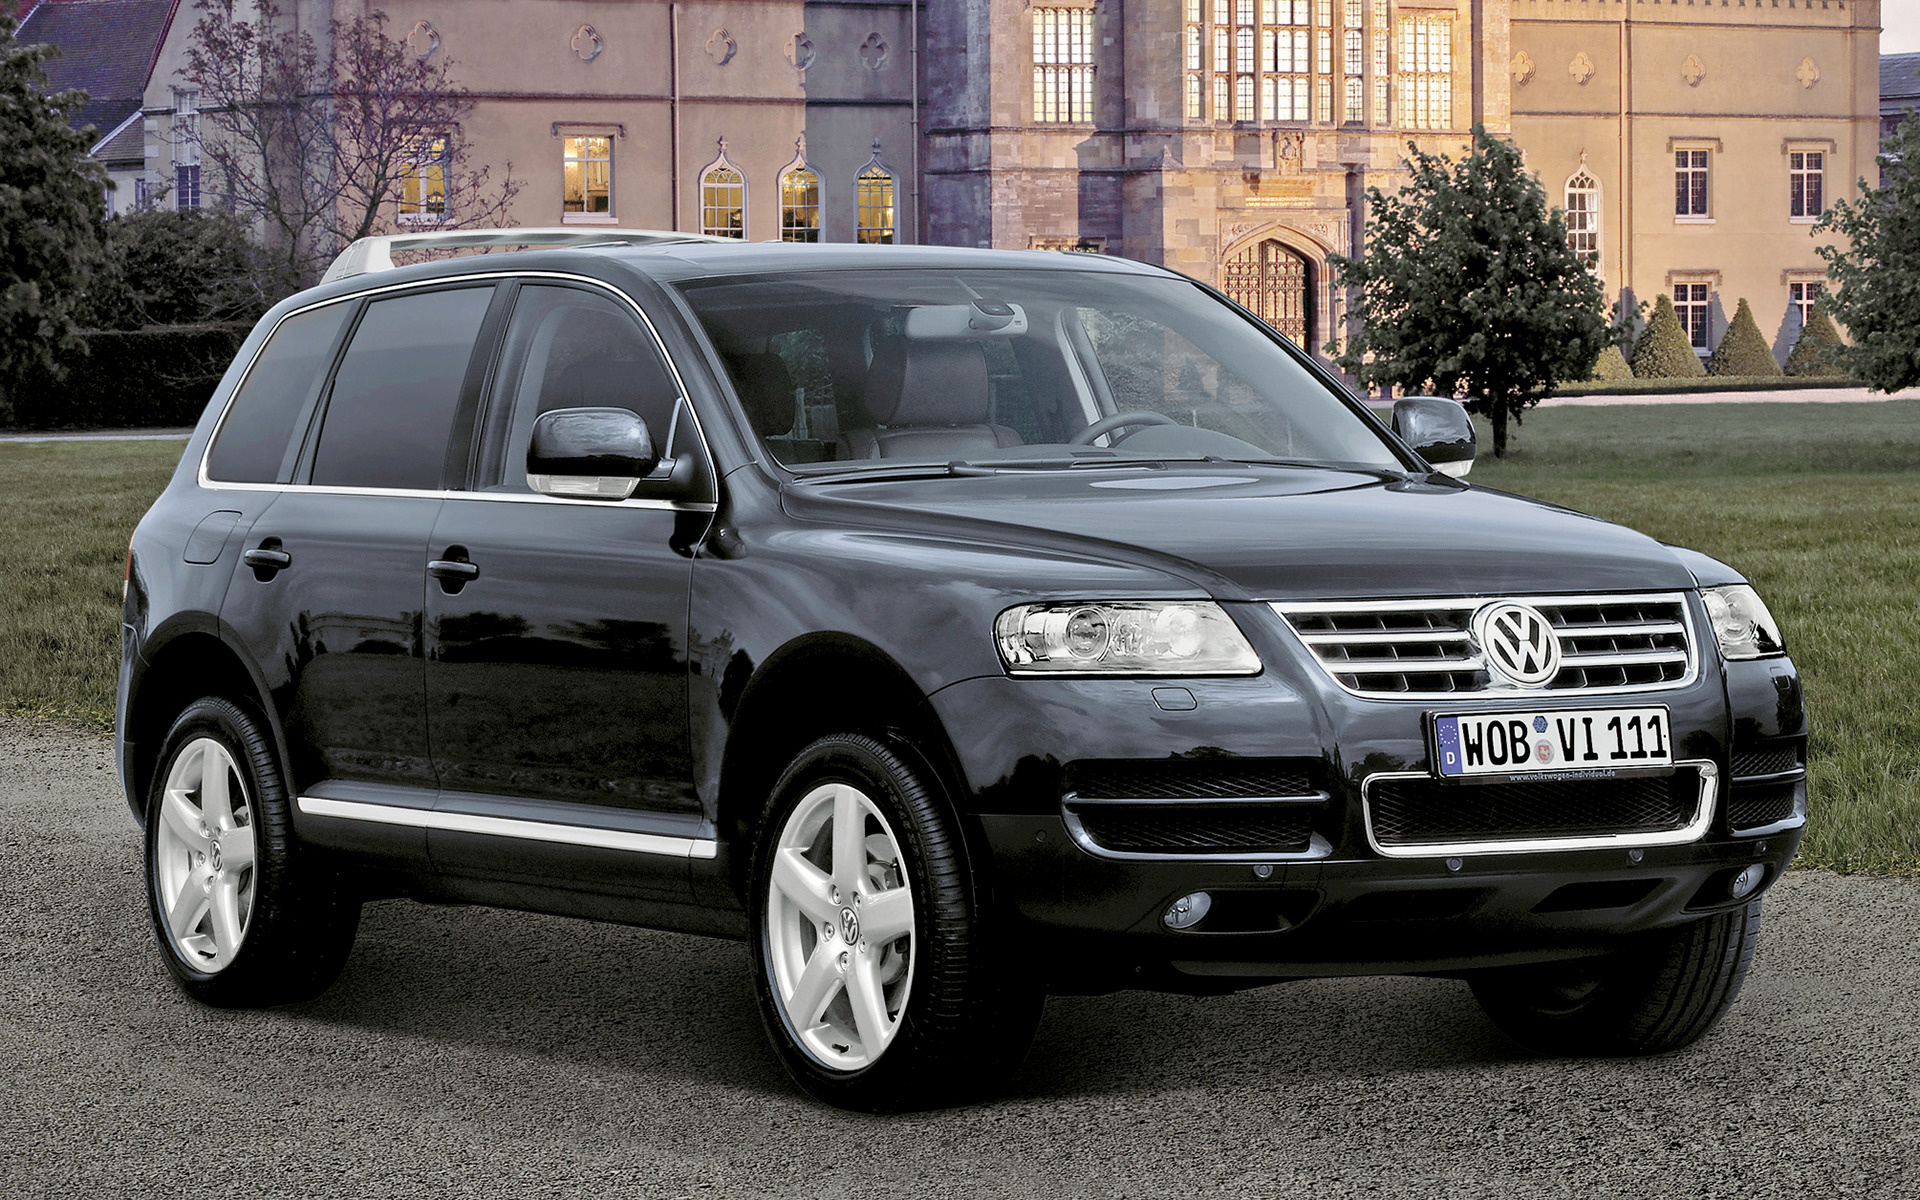 2005 Volkswagen Touareg W12 Executive   Wallpapers and HD Images 1920x1200